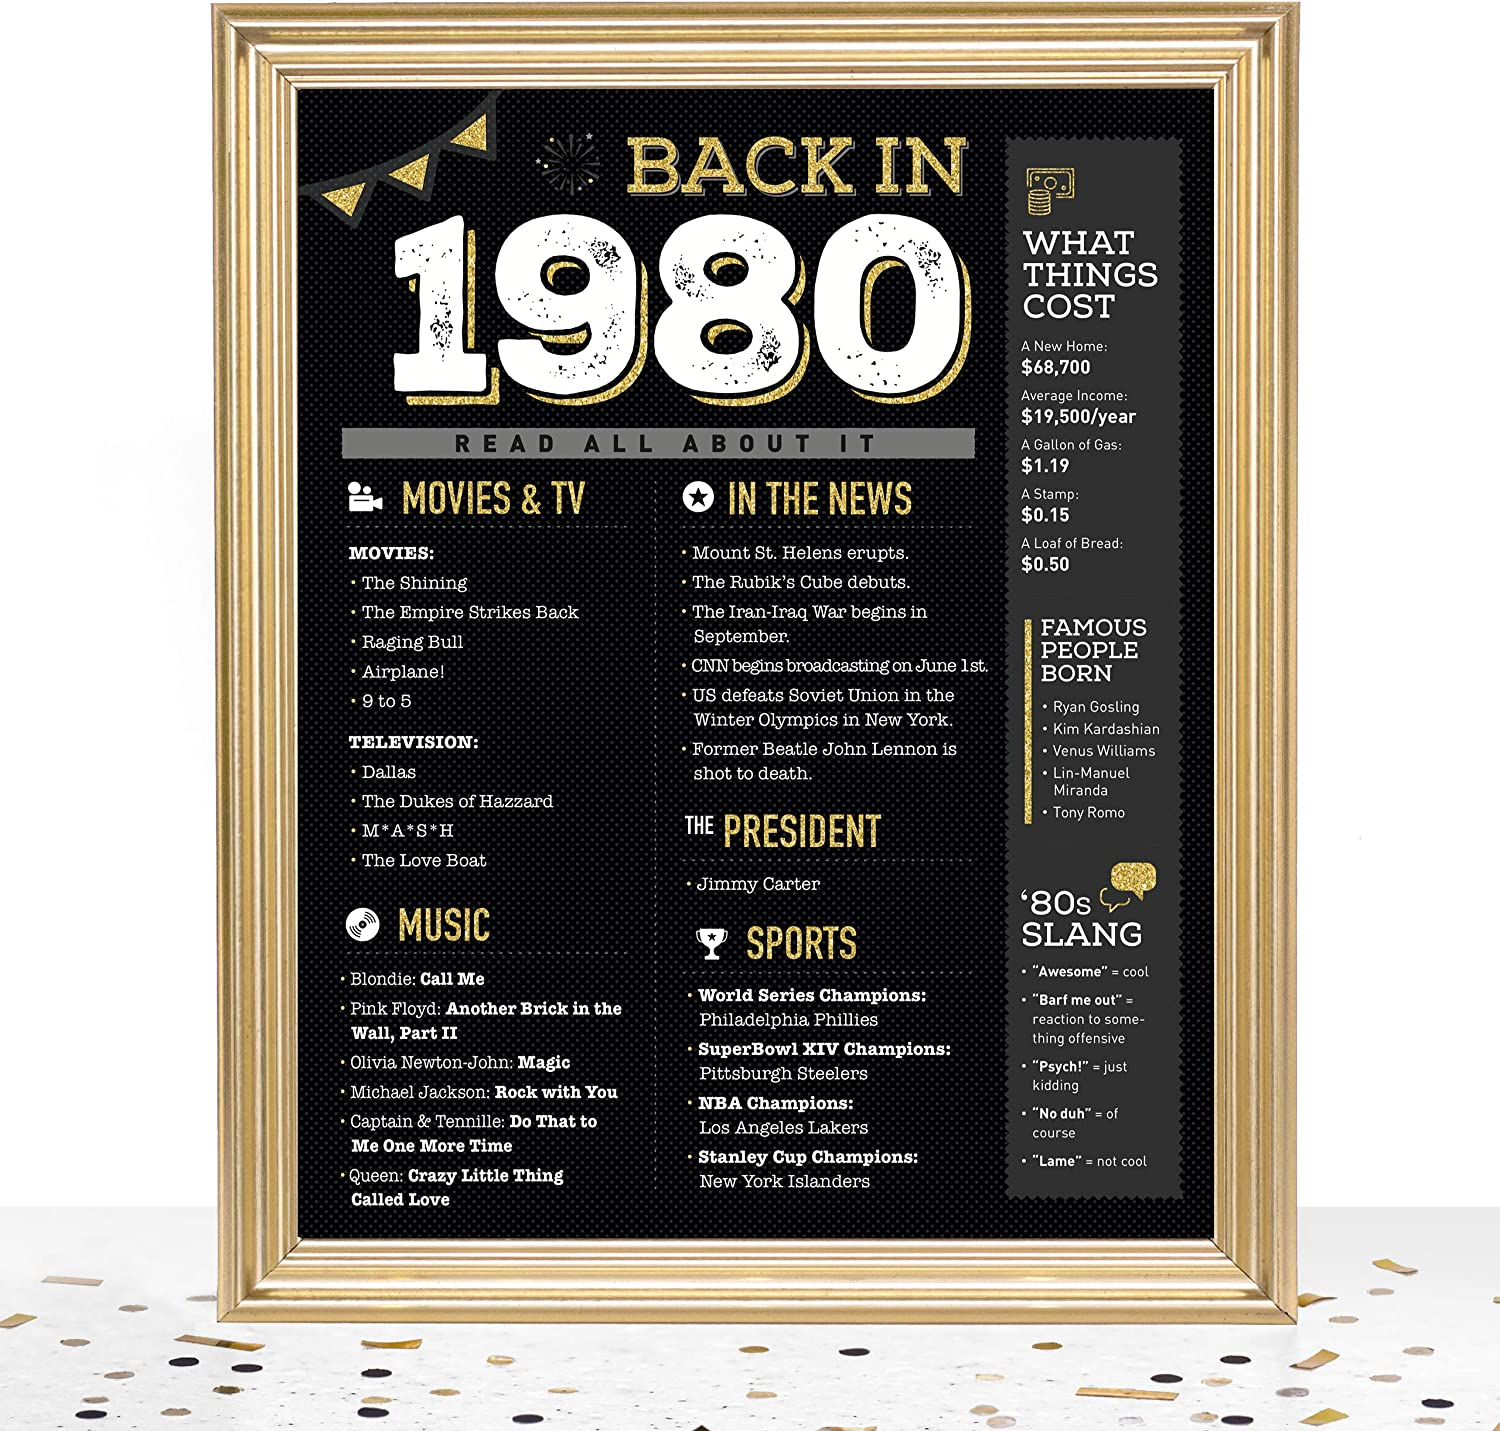 GoodSite Brands 40th Birthday Decorations Anniversary Centerpiece Gifts for Women Men   8x10 Back In 1980 Sign/Poster Unframed   Perfect Party Table Decor, Black/Gold with Fun Vintage Look